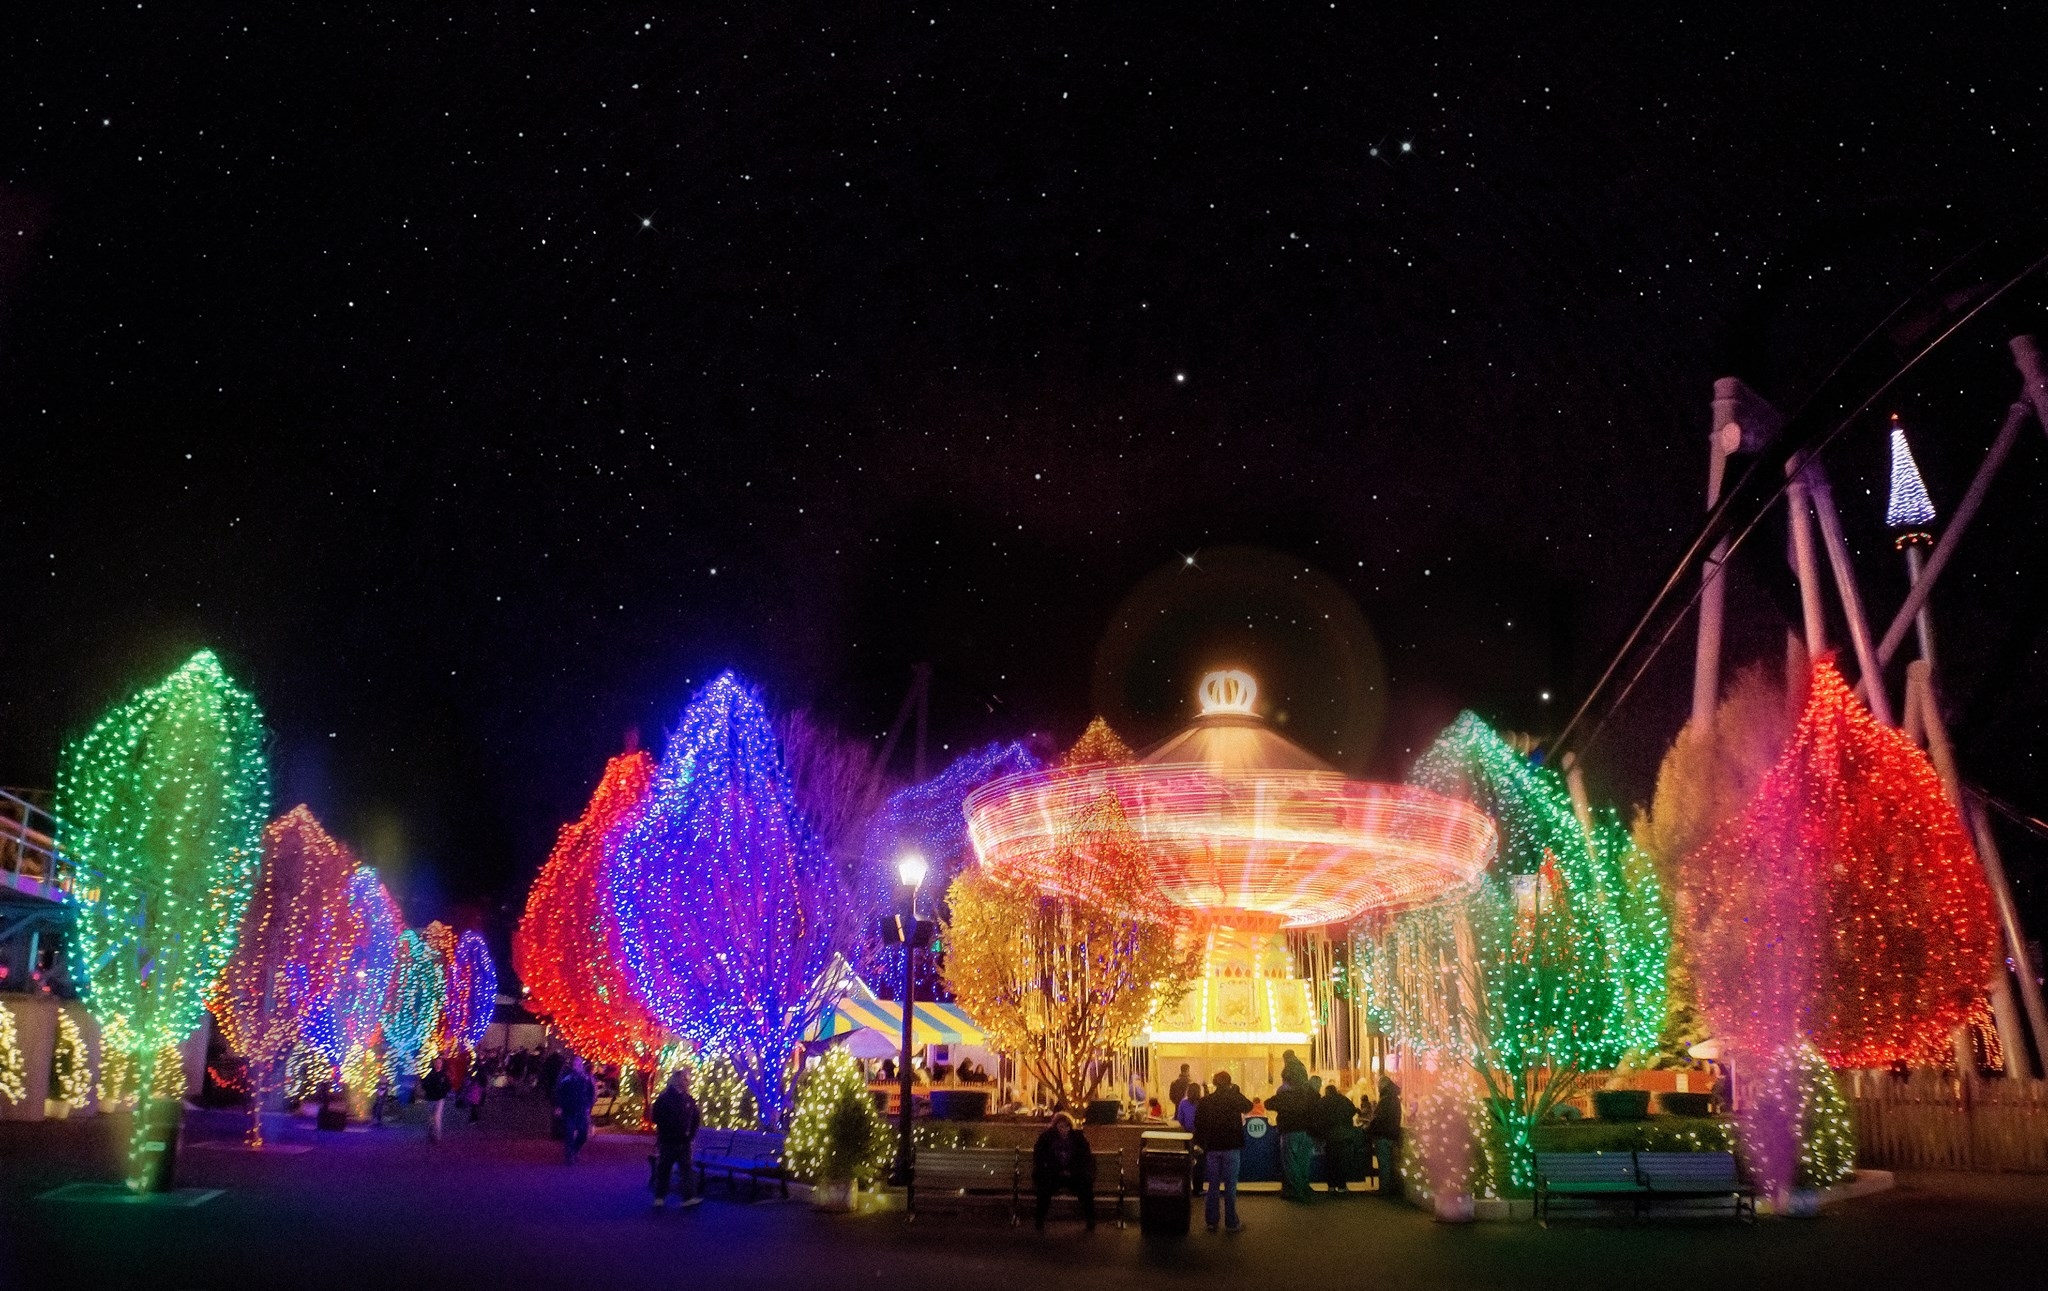 christmas candylane mommypoppins things to do in philadelphia with kids - Christmas Candylane